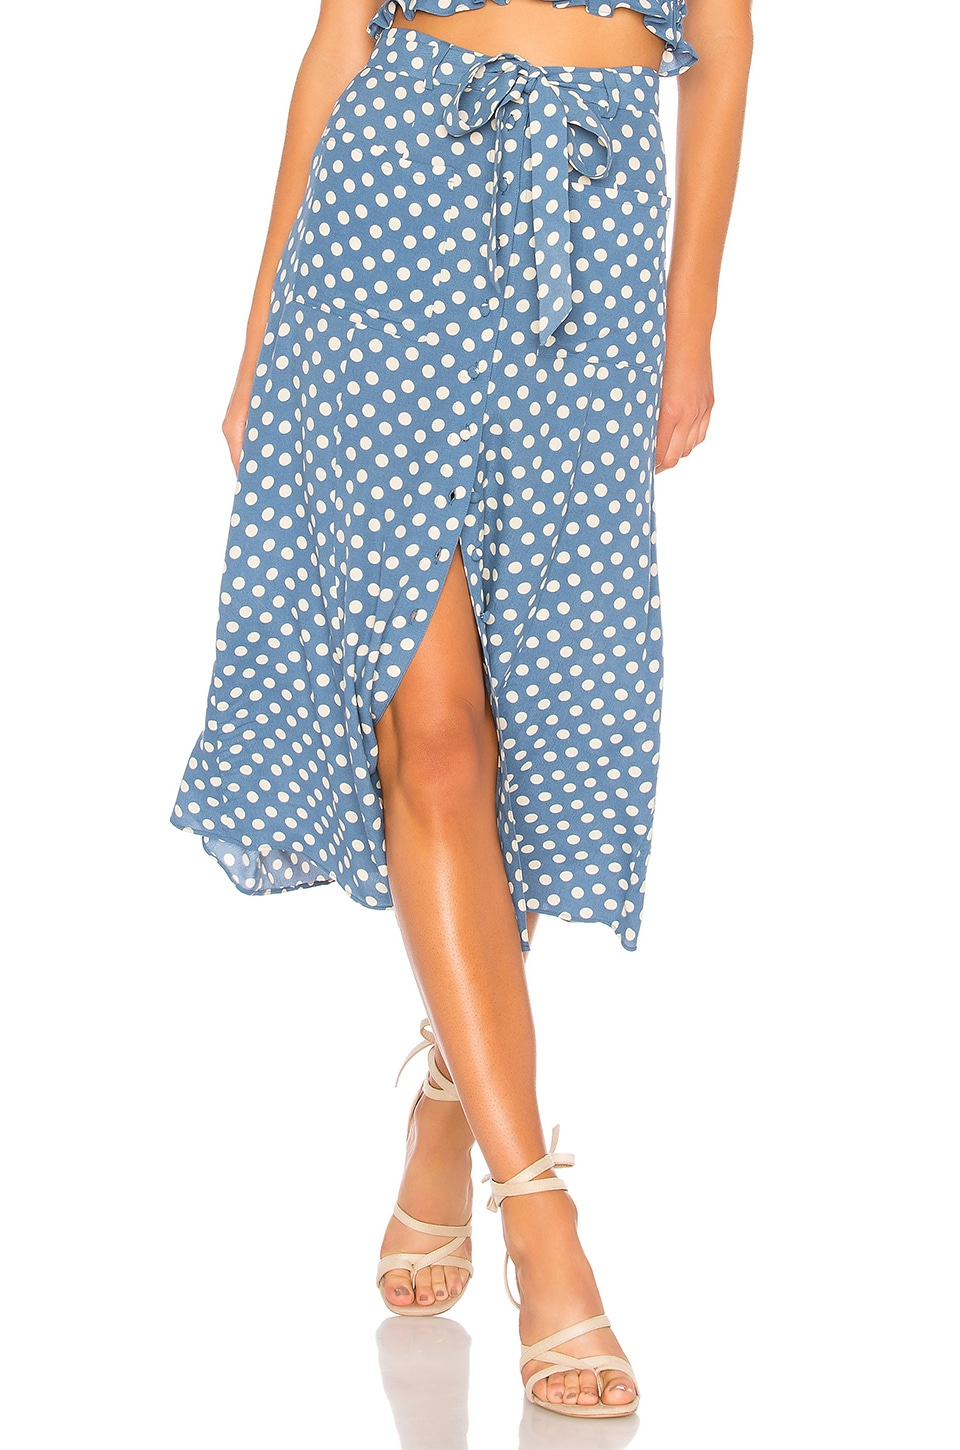 L'Academie The Andres Midi Skirt in Blue Dot